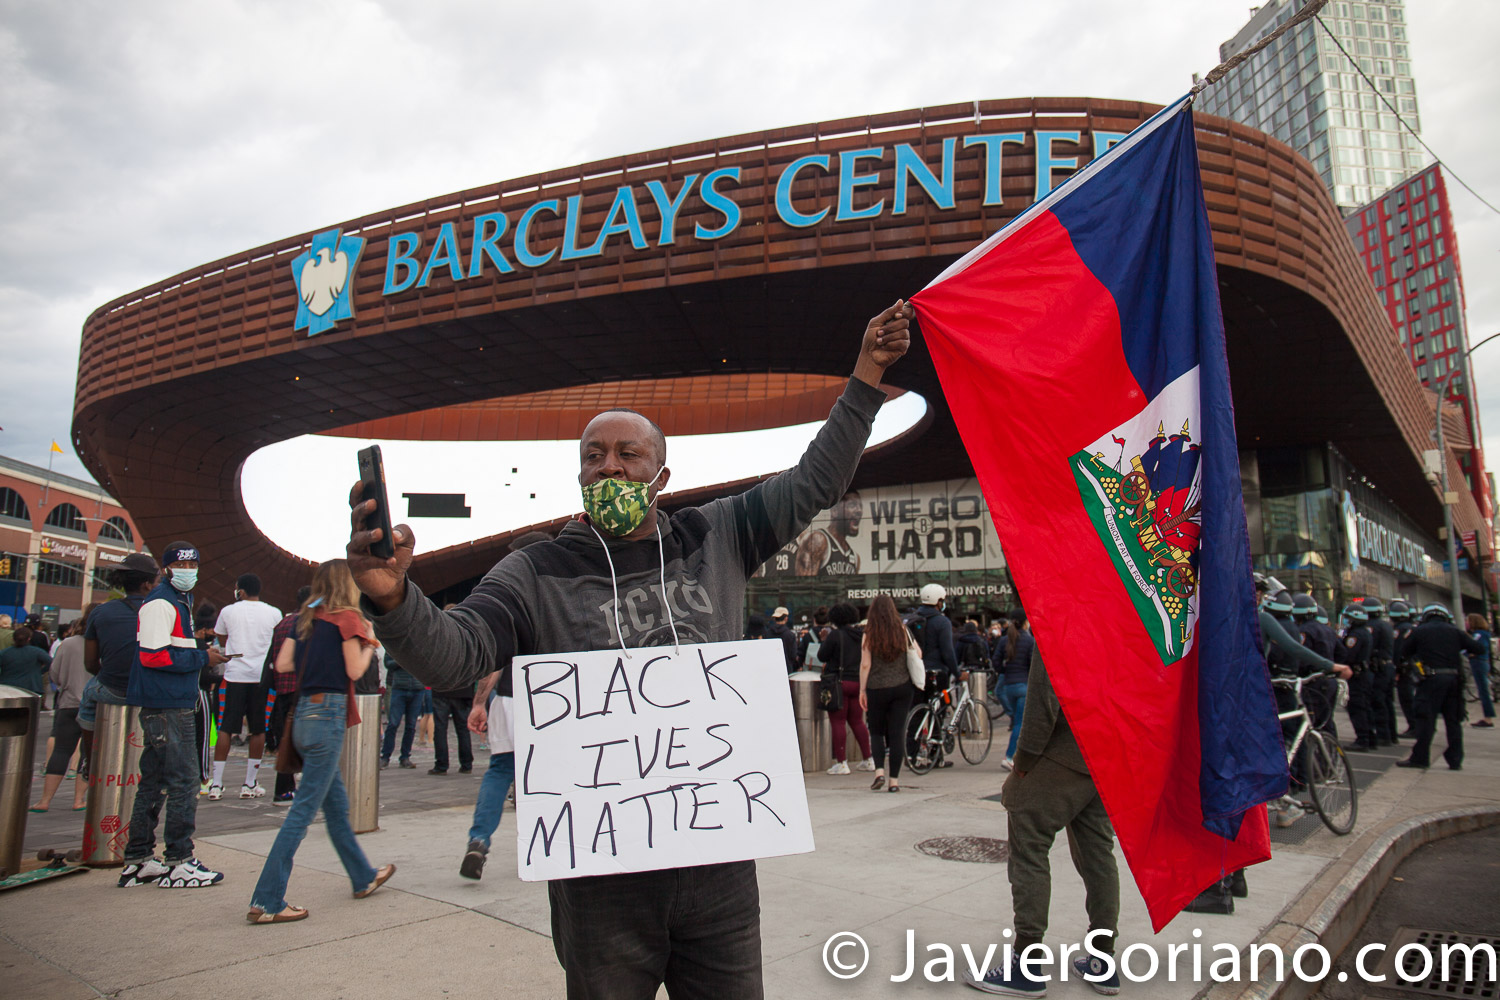 Monday, June 1, 2020. New York City - Rally at Barclays Center in Brooklyn. People demand justice for George Floyd and other people killed by police officers. Photo by Javier Soriano/www.JavierSoriano.com